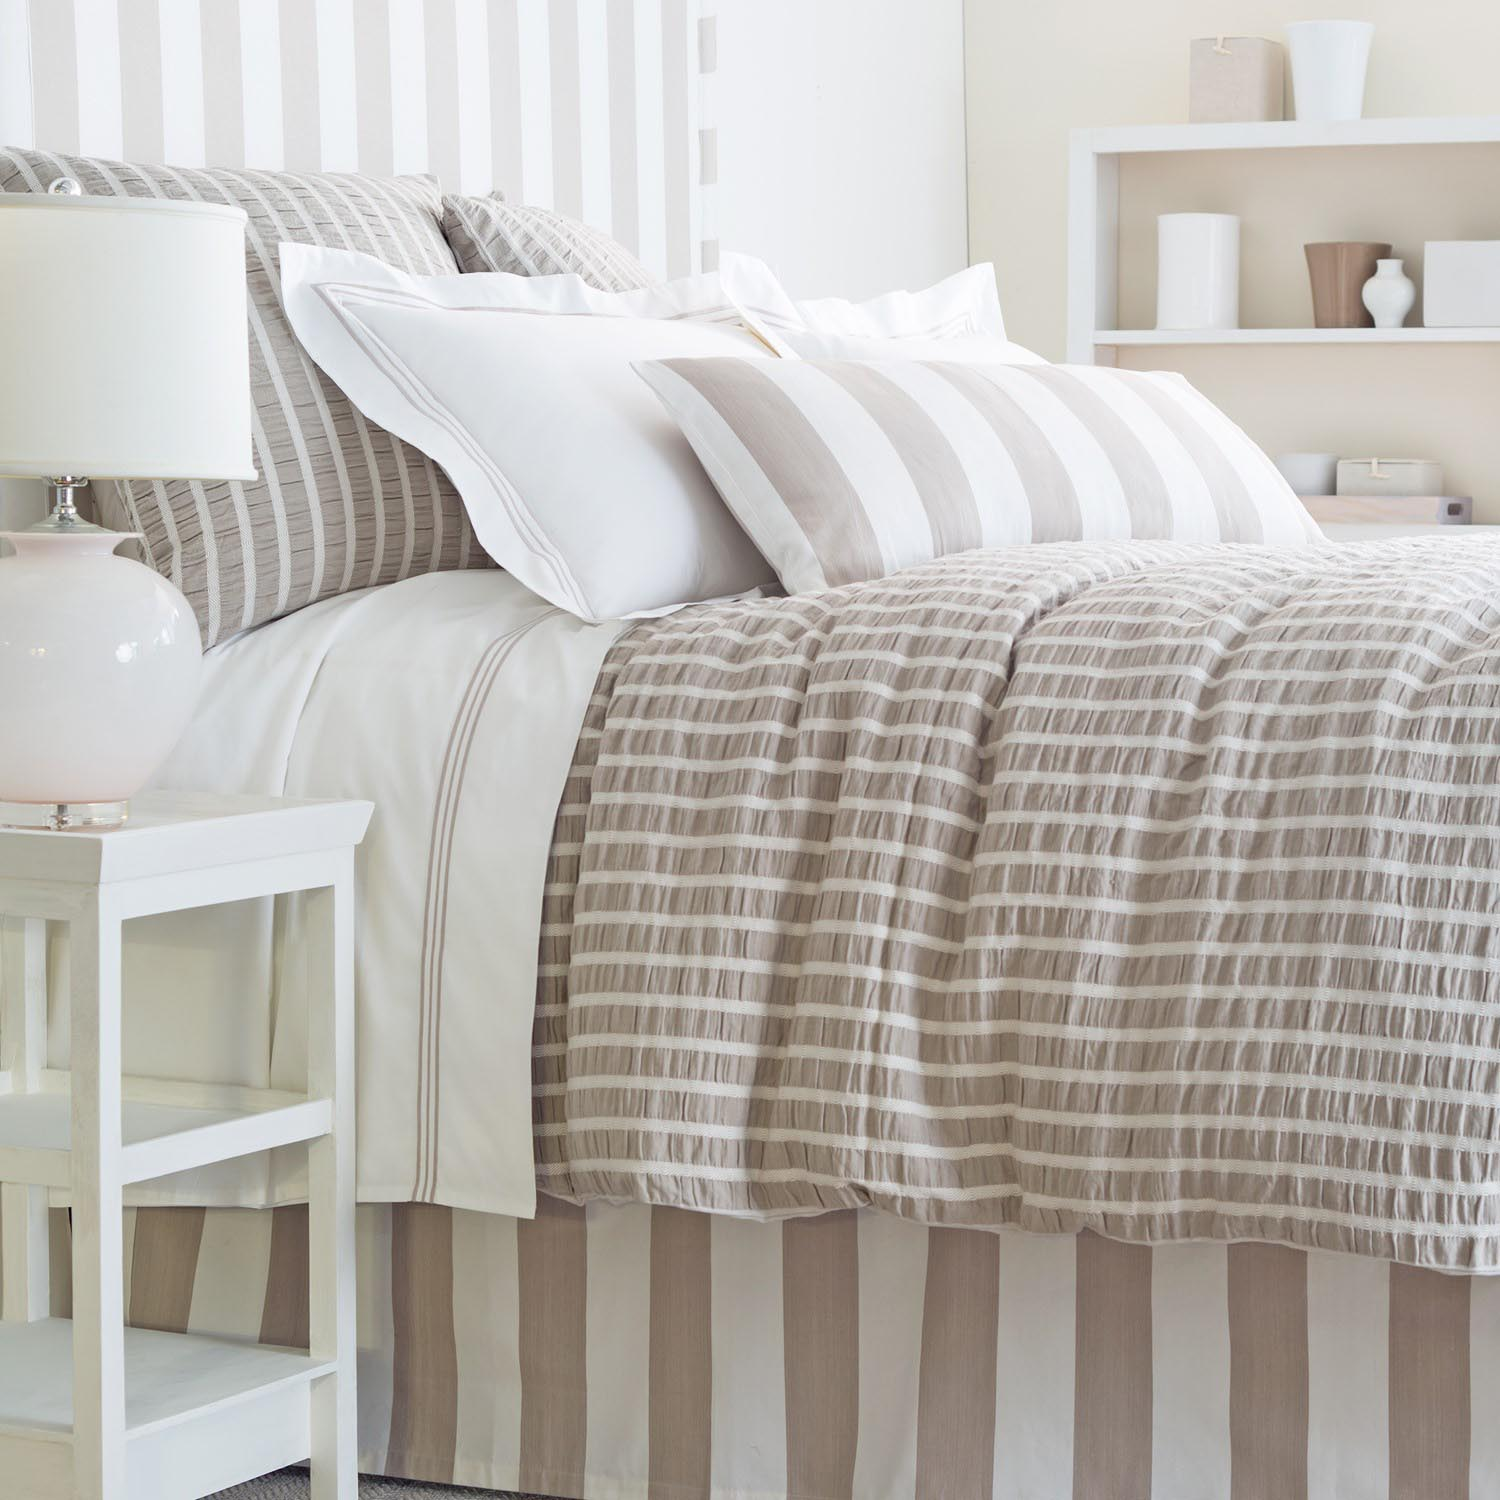 parker pearl grey bedding by pine cone hill - Pine Cone Hill Bedding